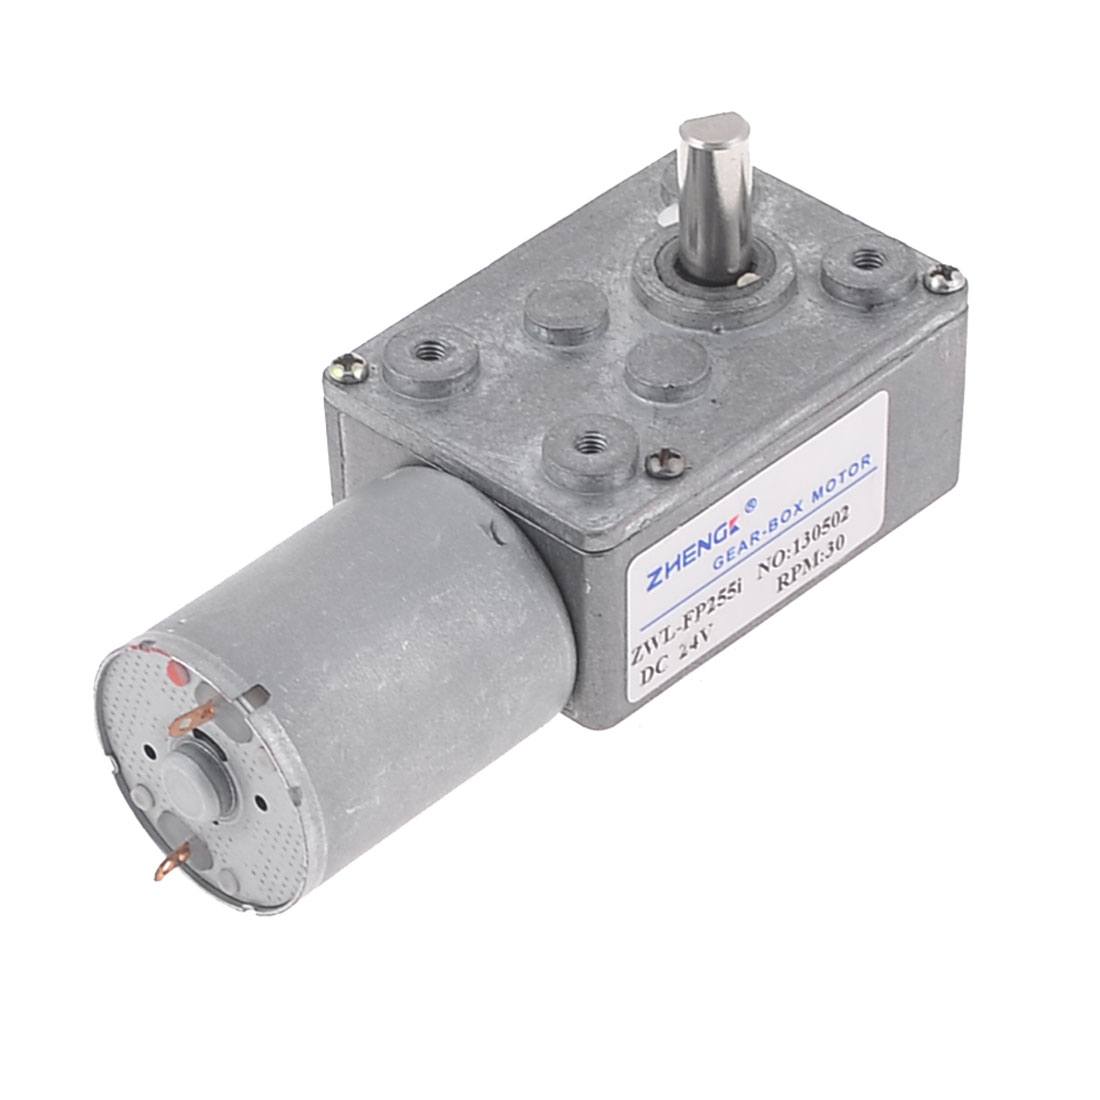 30RPM Output Speed 2 Terminal Connecting 6mm Drive Shaft Geared Motor DC 24V